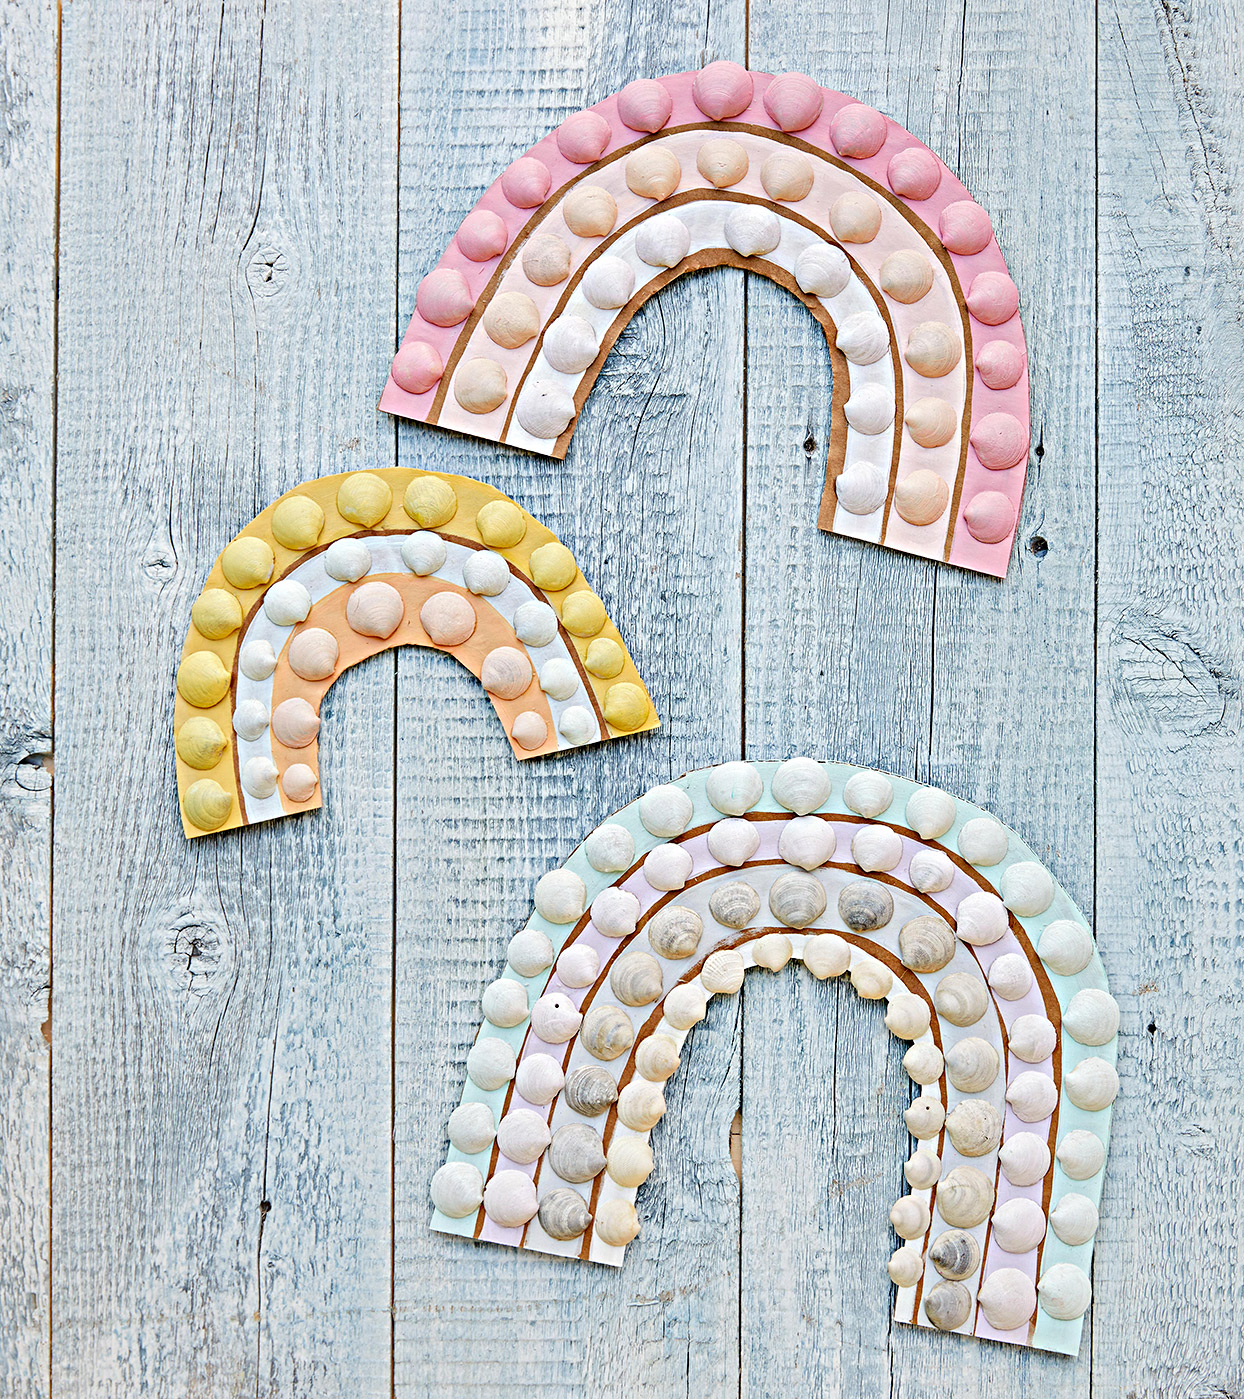 Rainbow shell craft project